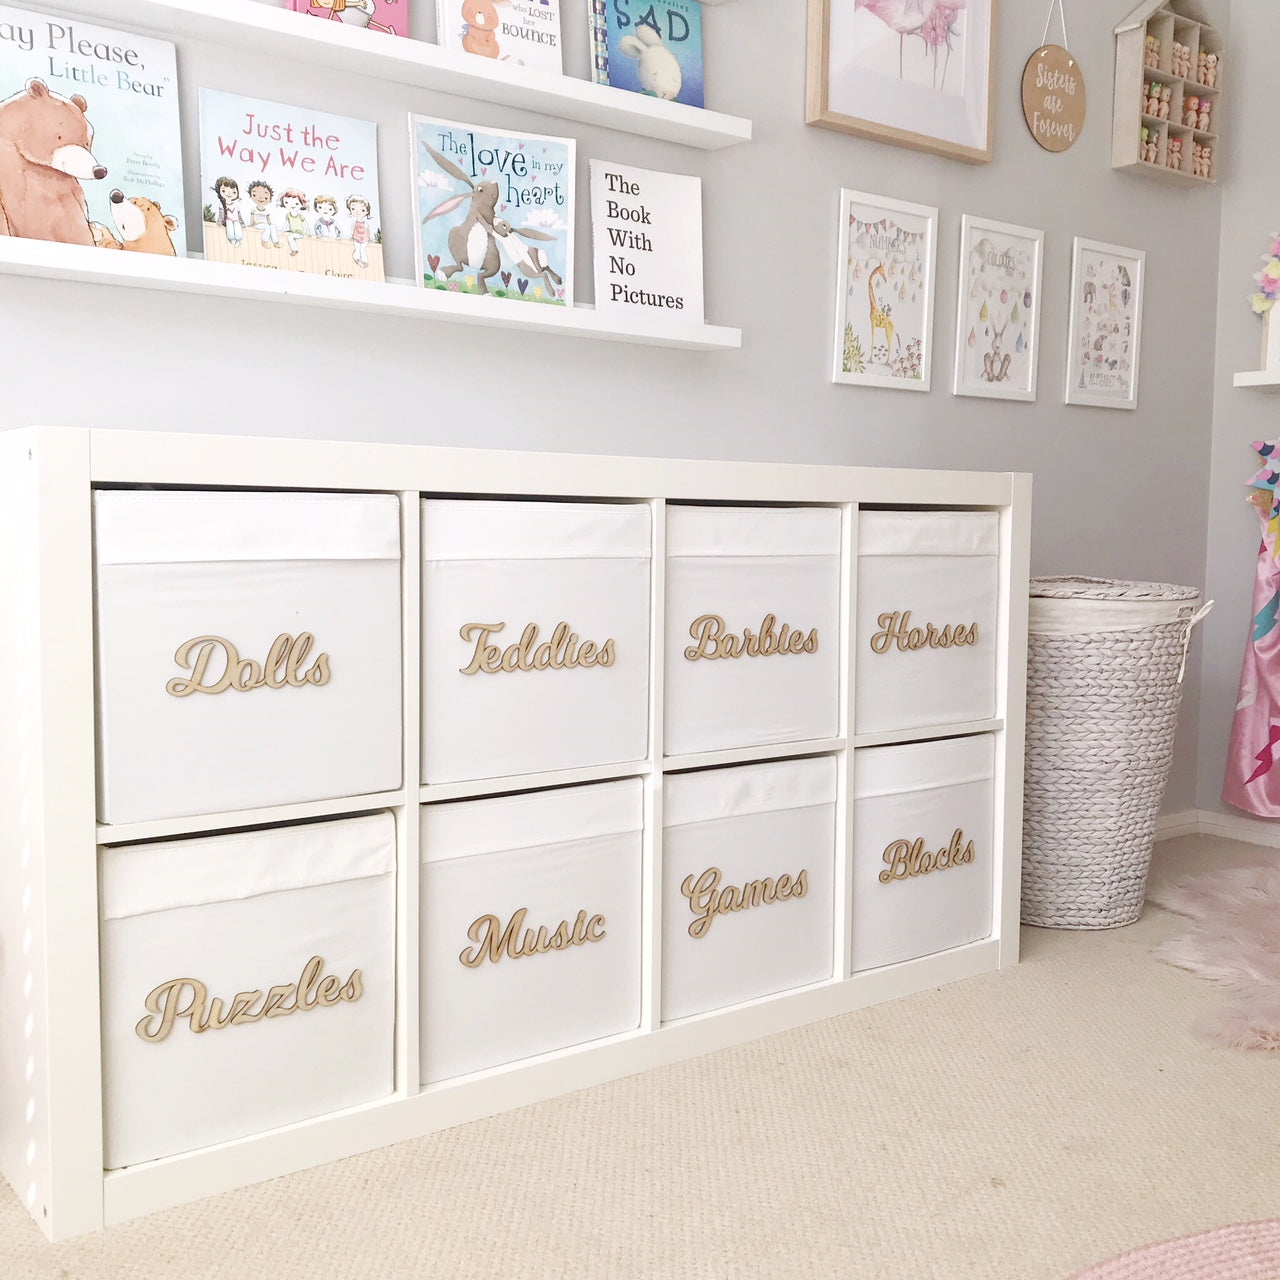 How to KonMari your kids room?